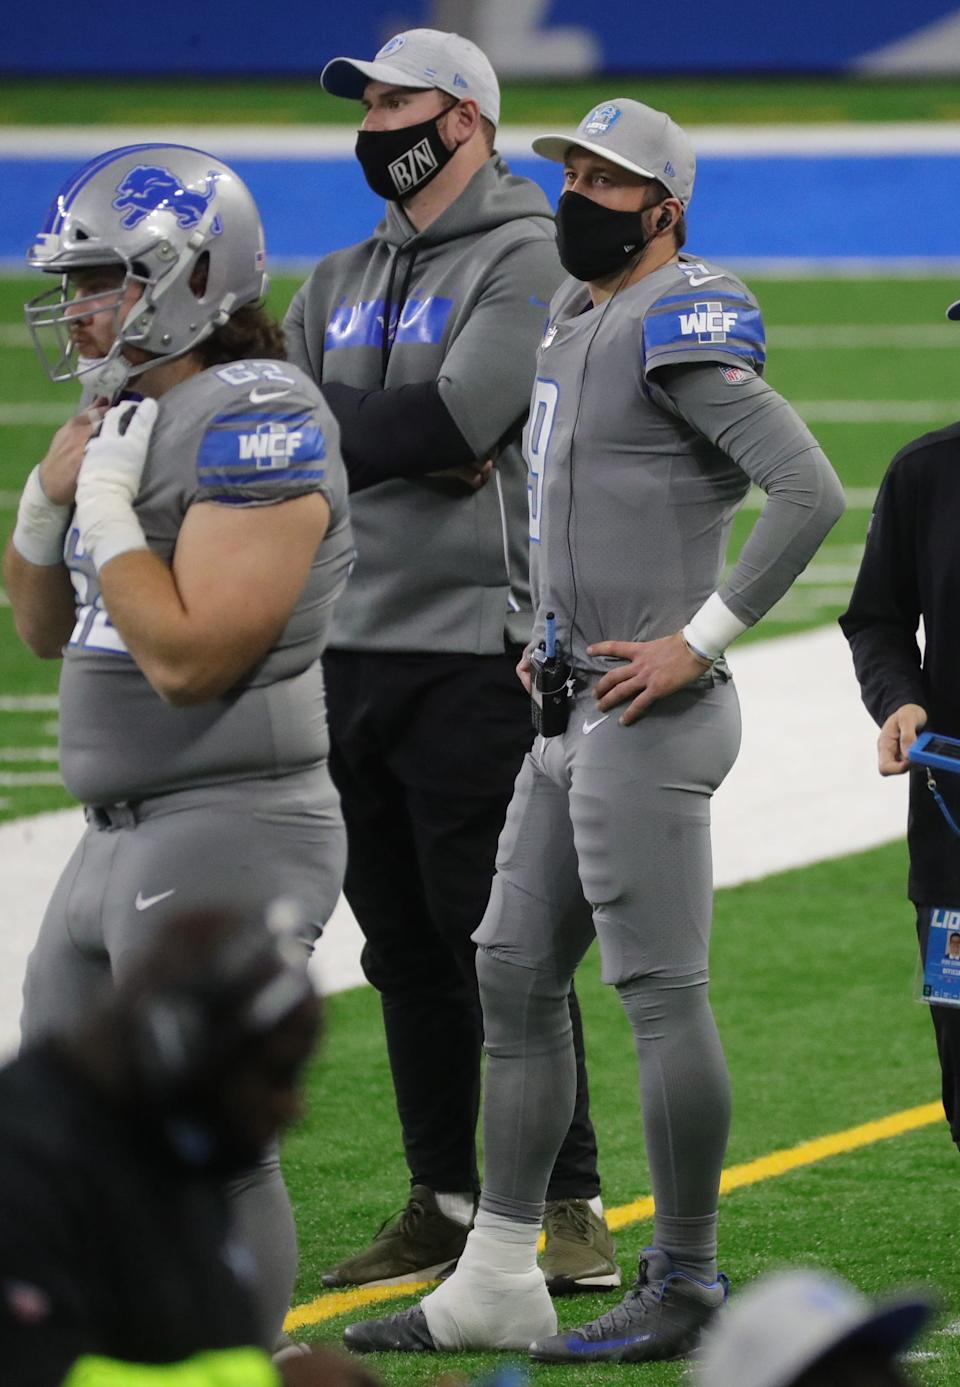 Detroit Lions quarterback Matthew Stafford stands on the sideline with an ankle injury during the first half against the Tampa Bay Buccaneers, Saturday, Dec. 26, 2020 at Ford Field.